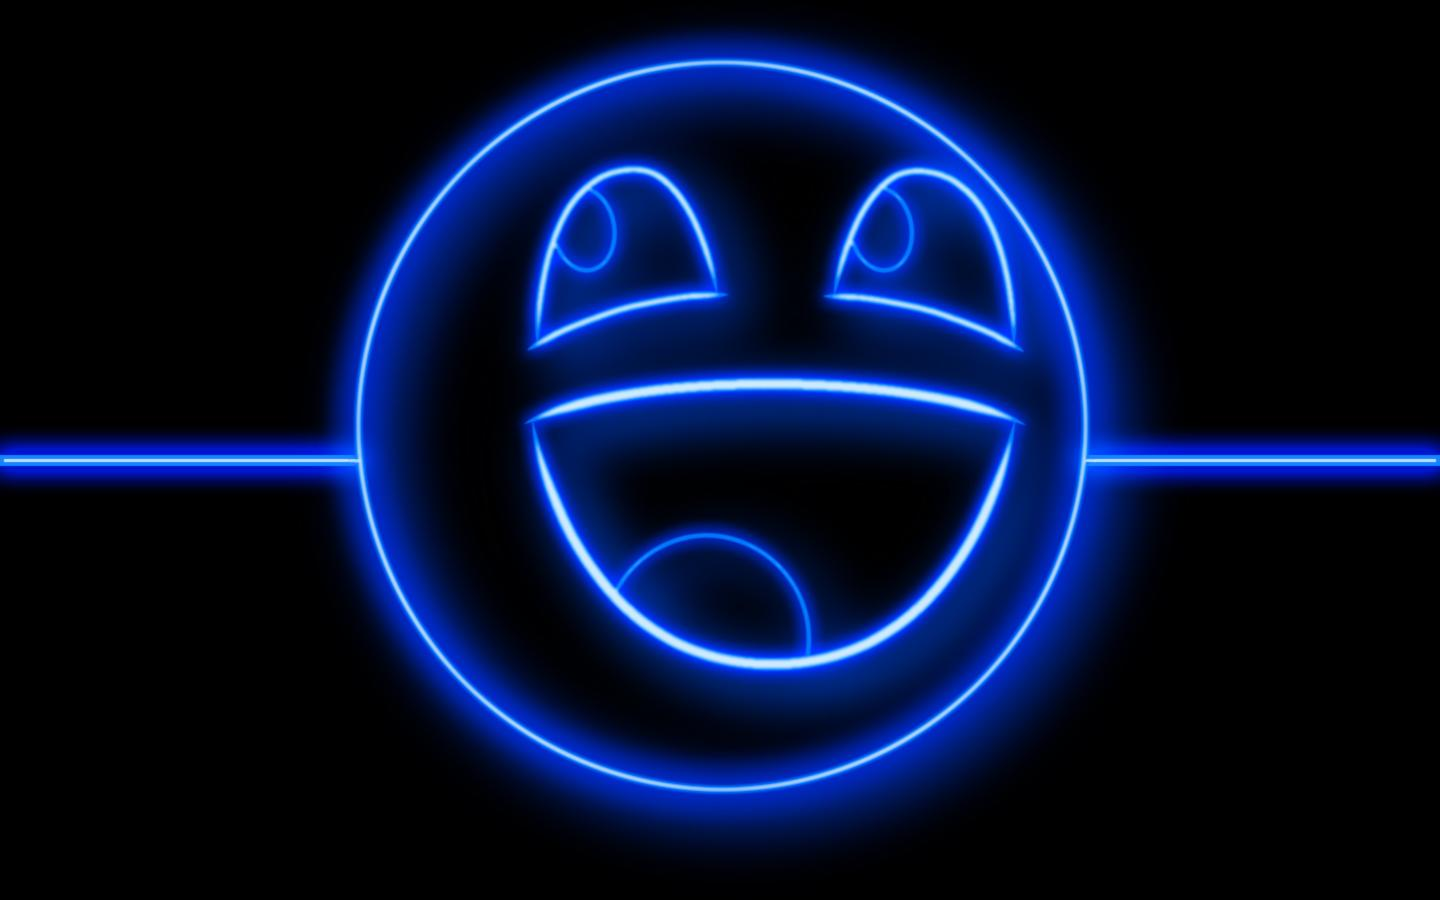 Neon Wallpapers for Android - Neon Smile Wallpaper